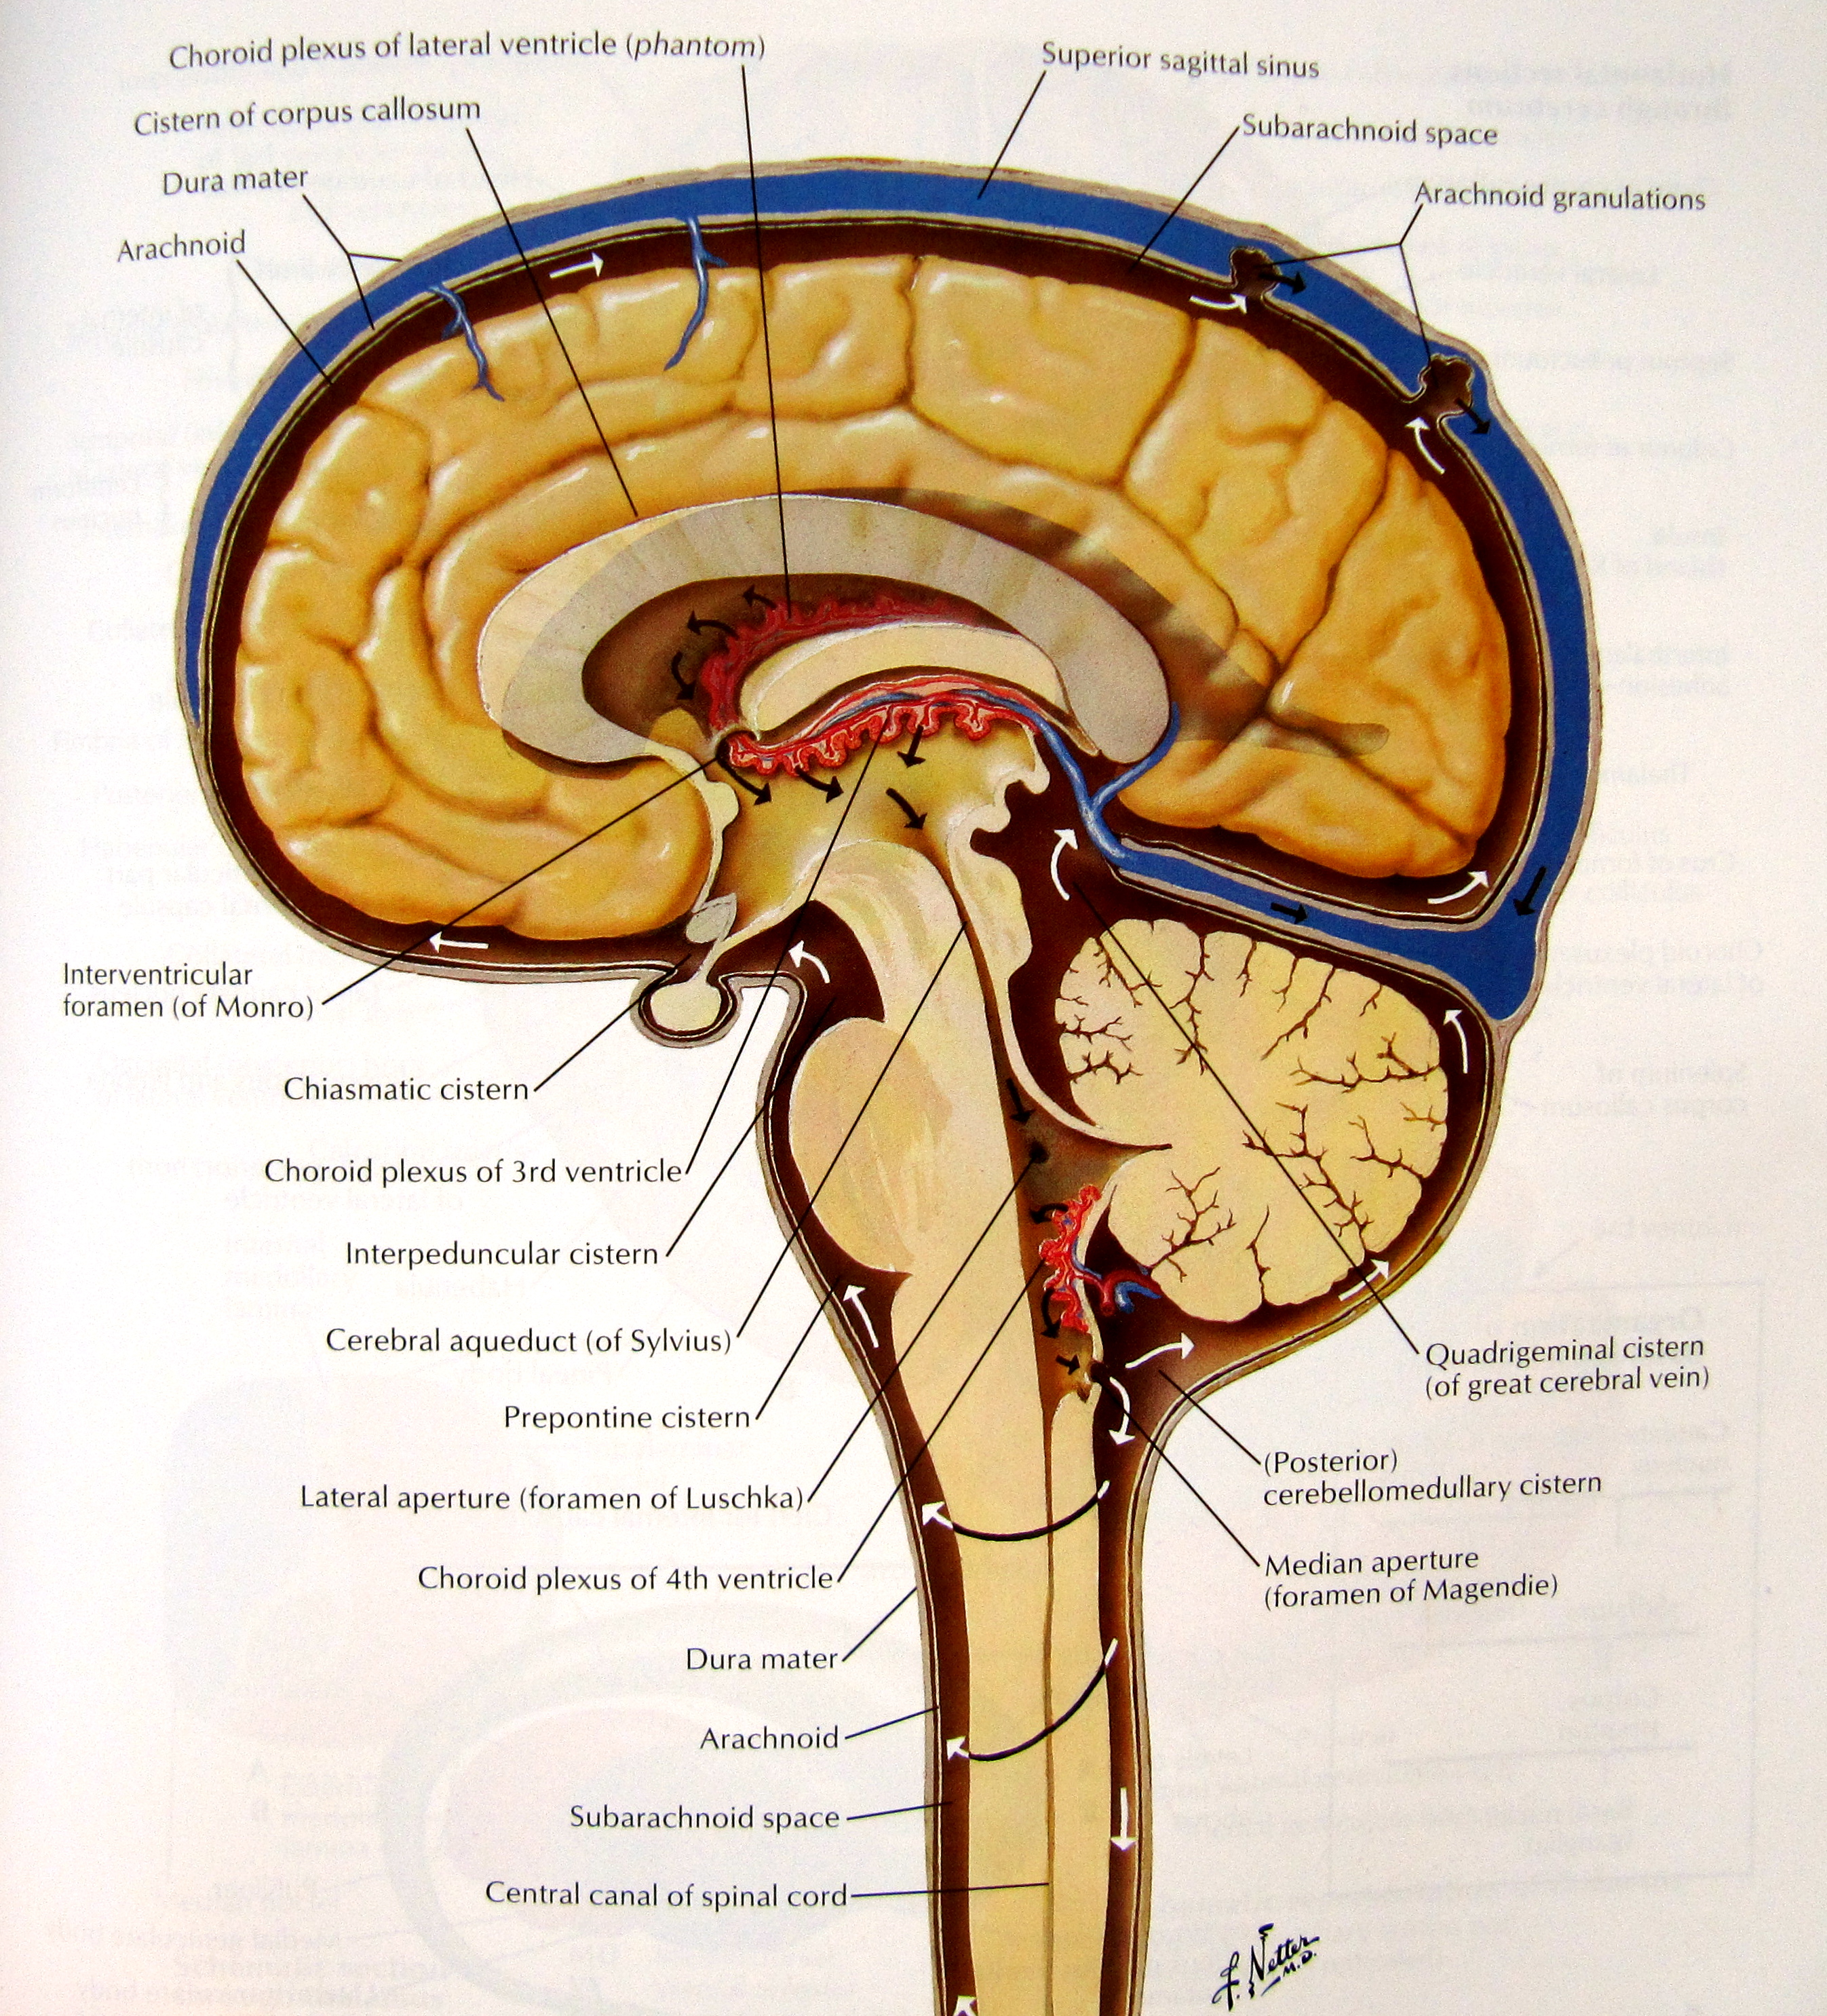 Notes On Anatomy And Physiology The Dorsal Cavity And Its Contents on cranial circulatory system